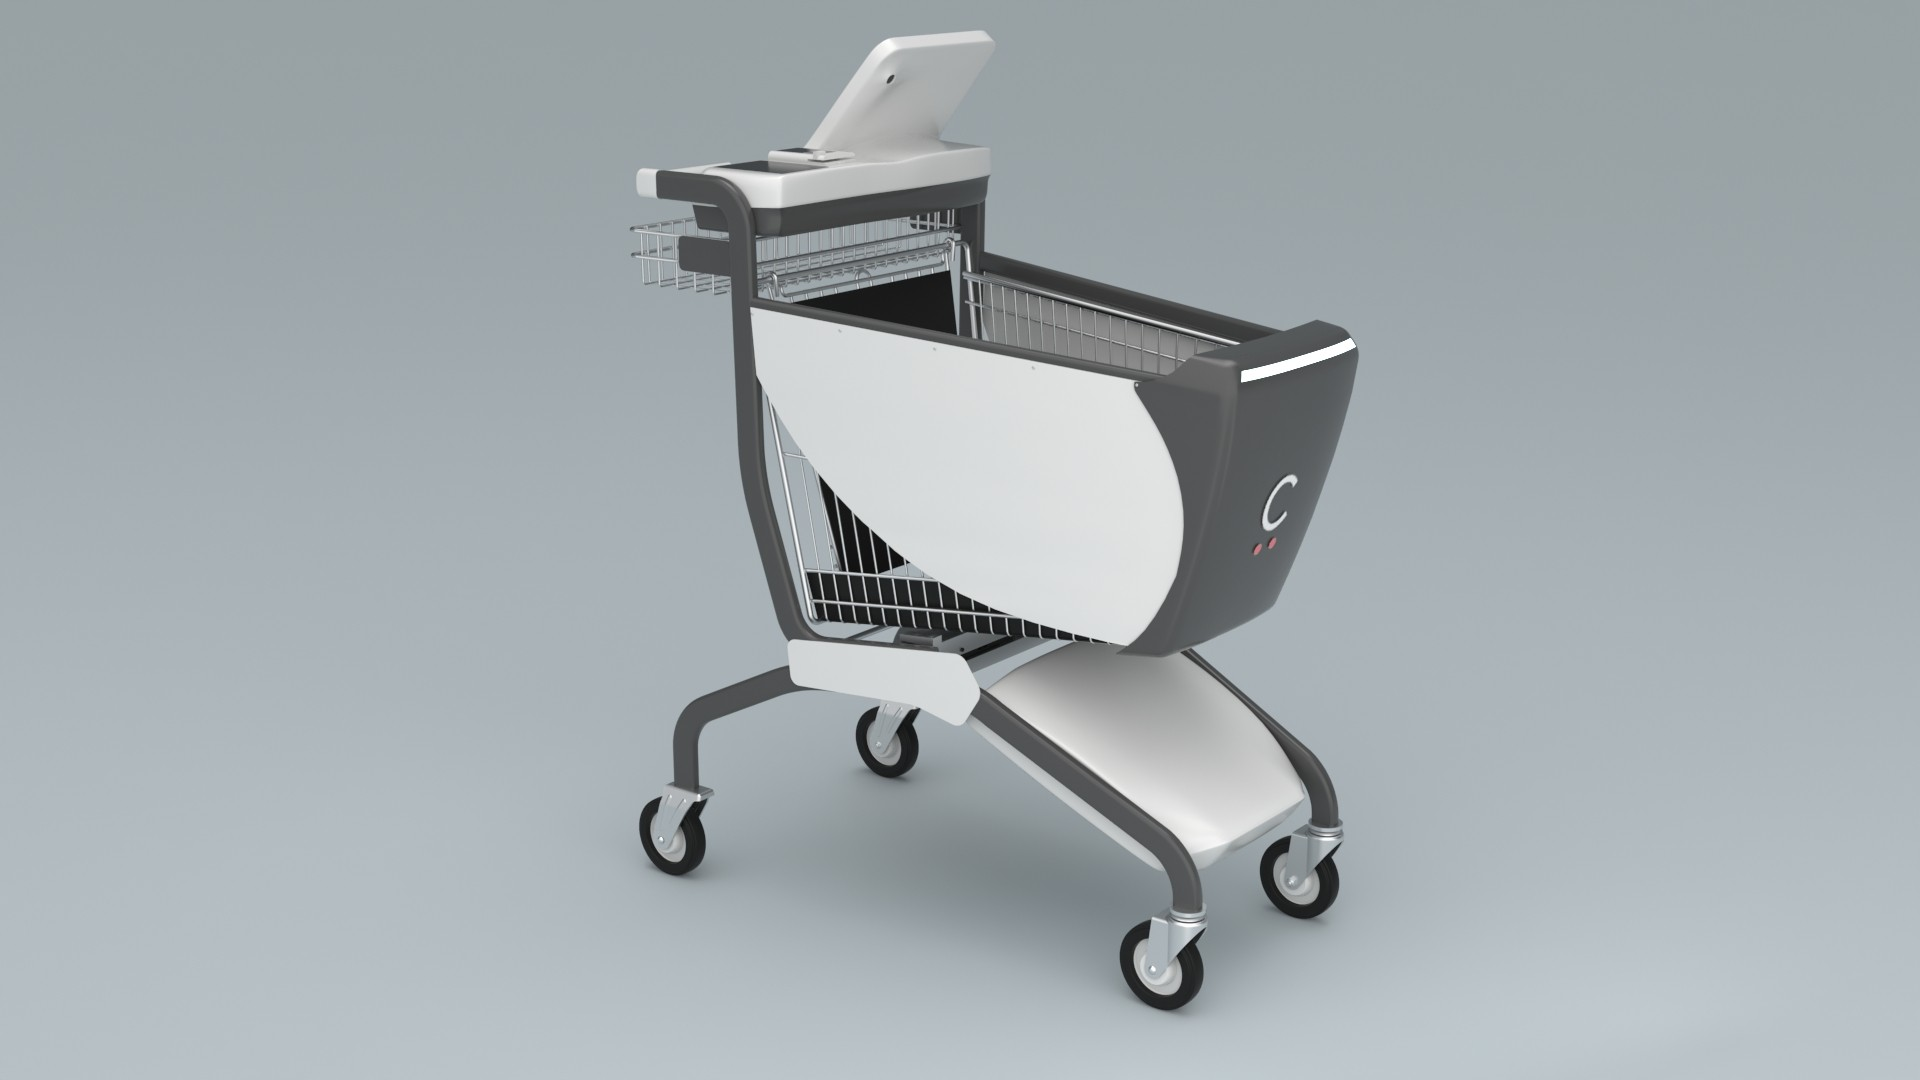 An AI shopping cart